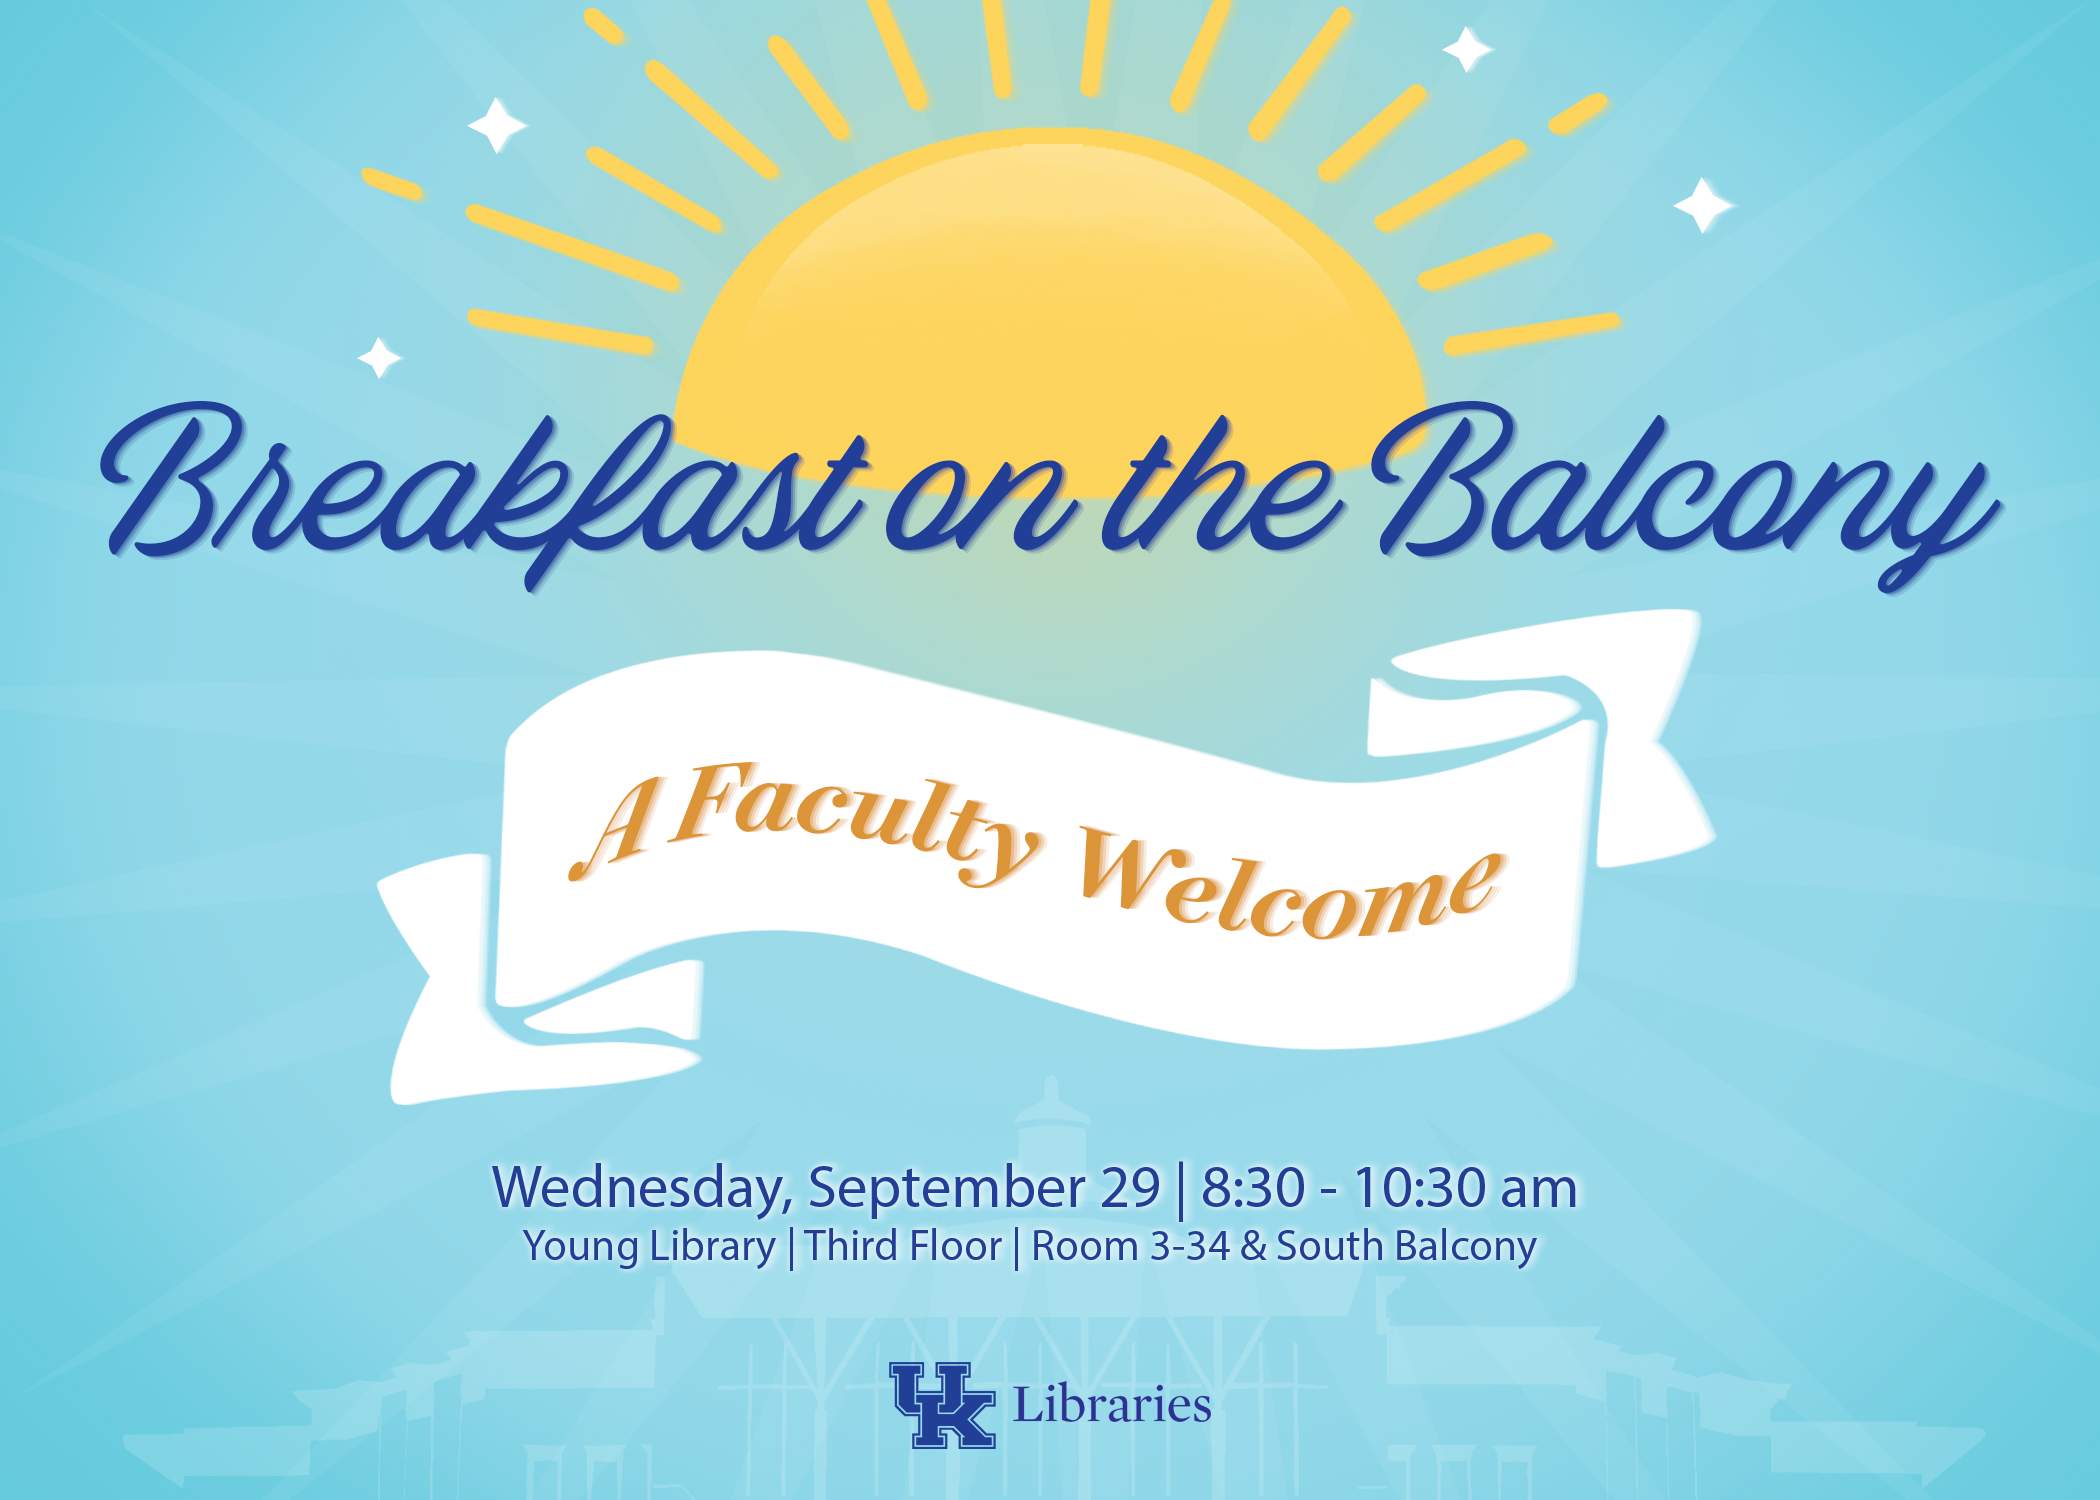 Faculty Breakfast Graphic